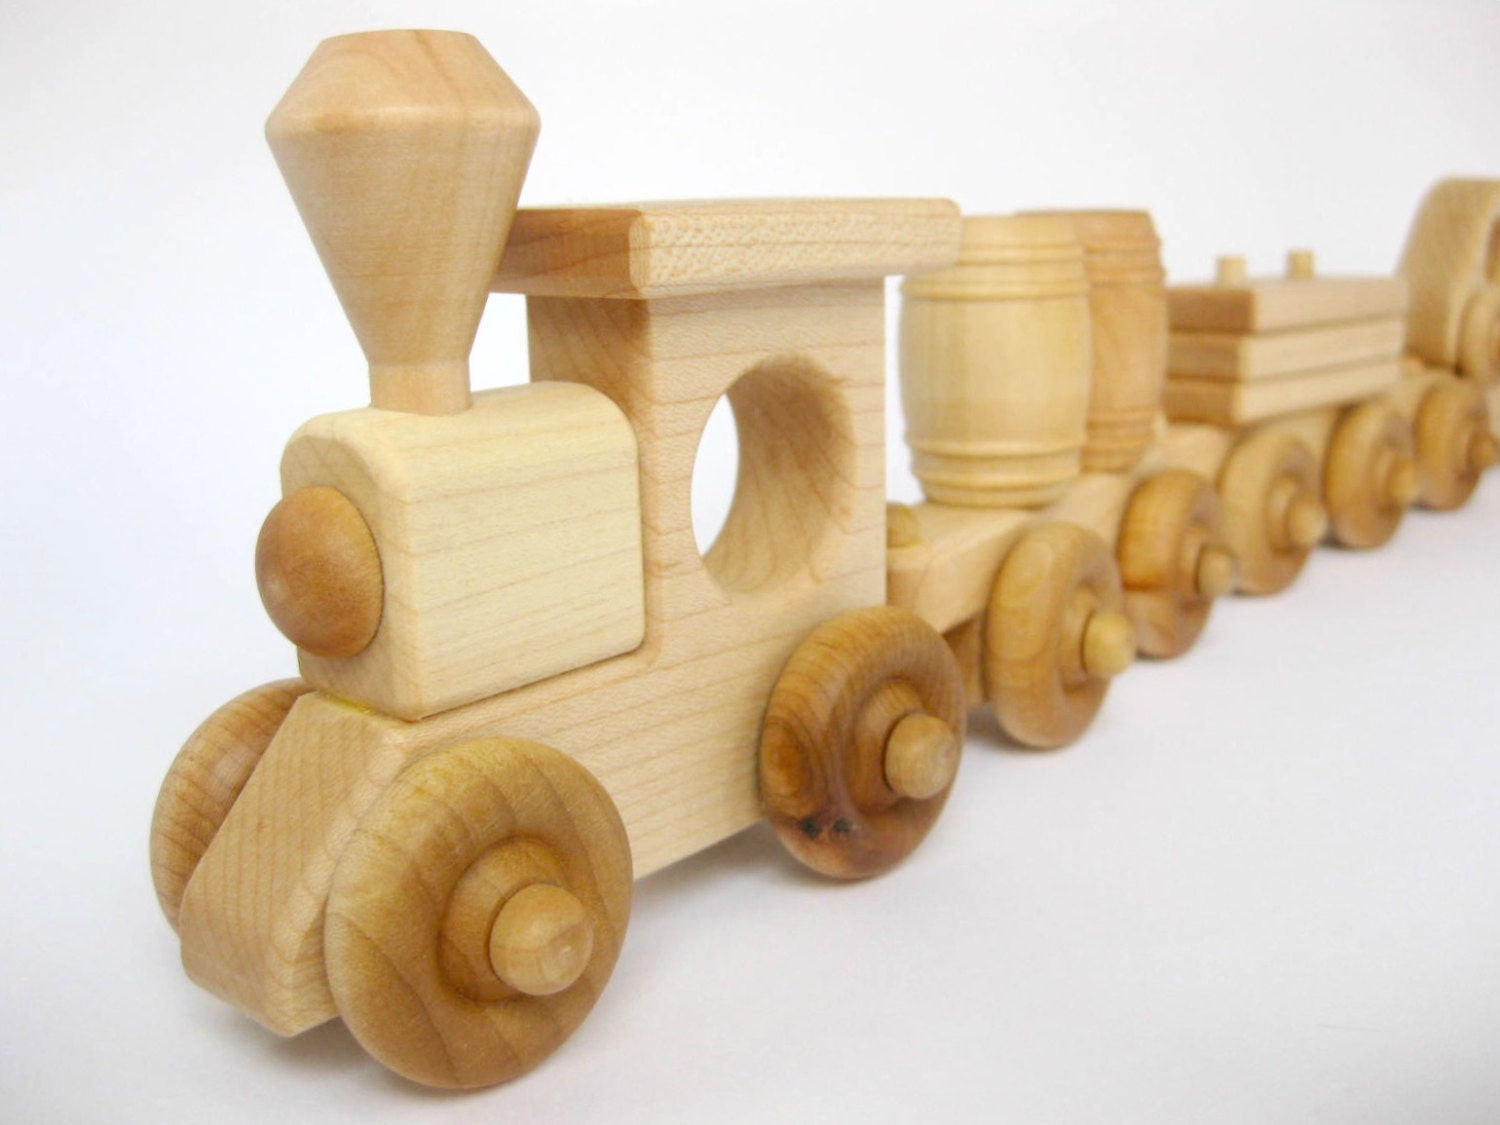 Wooden Toy Trains : Wooden toy train set cars natural wood